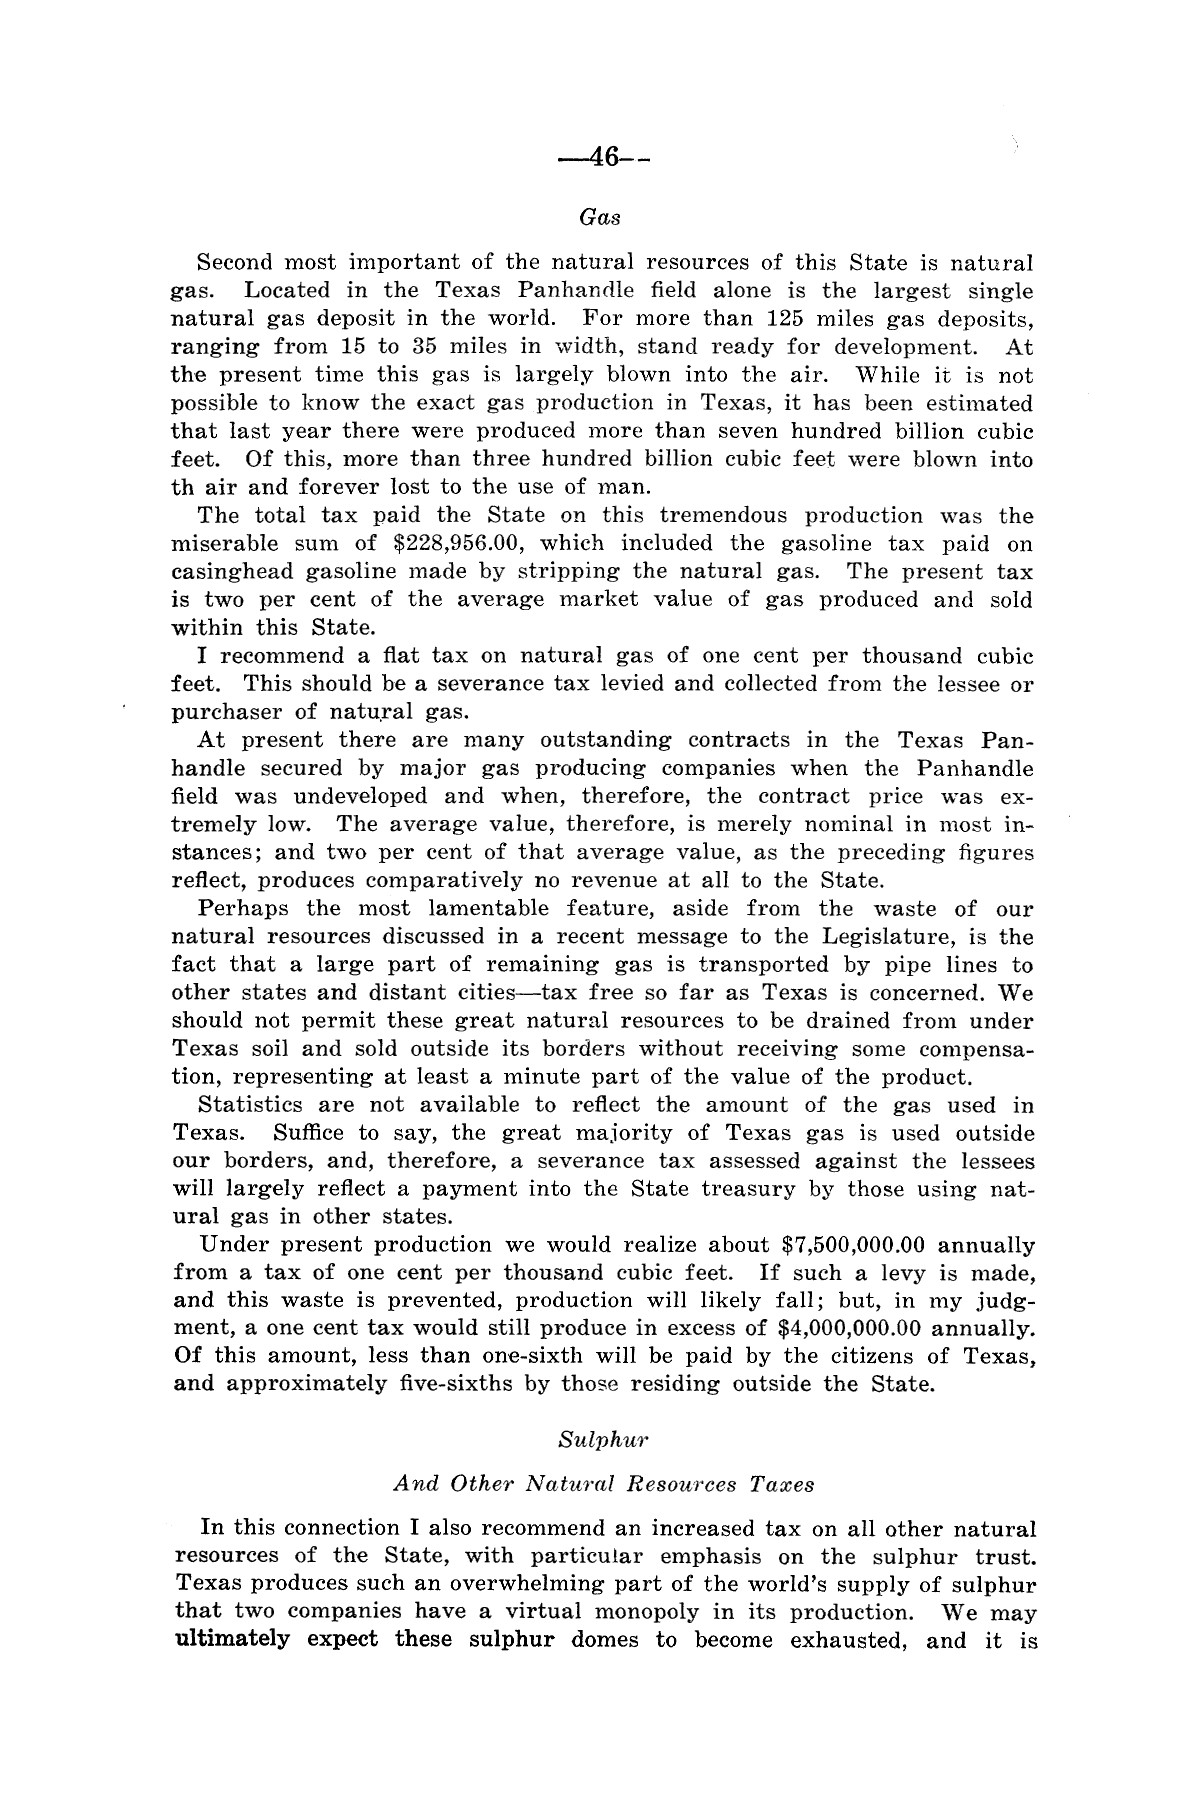 Legislative Messages of Hon. James V. Allred, Governor of Texas 1935-1939                                                                                                      [Sequence #]: 45 of 263